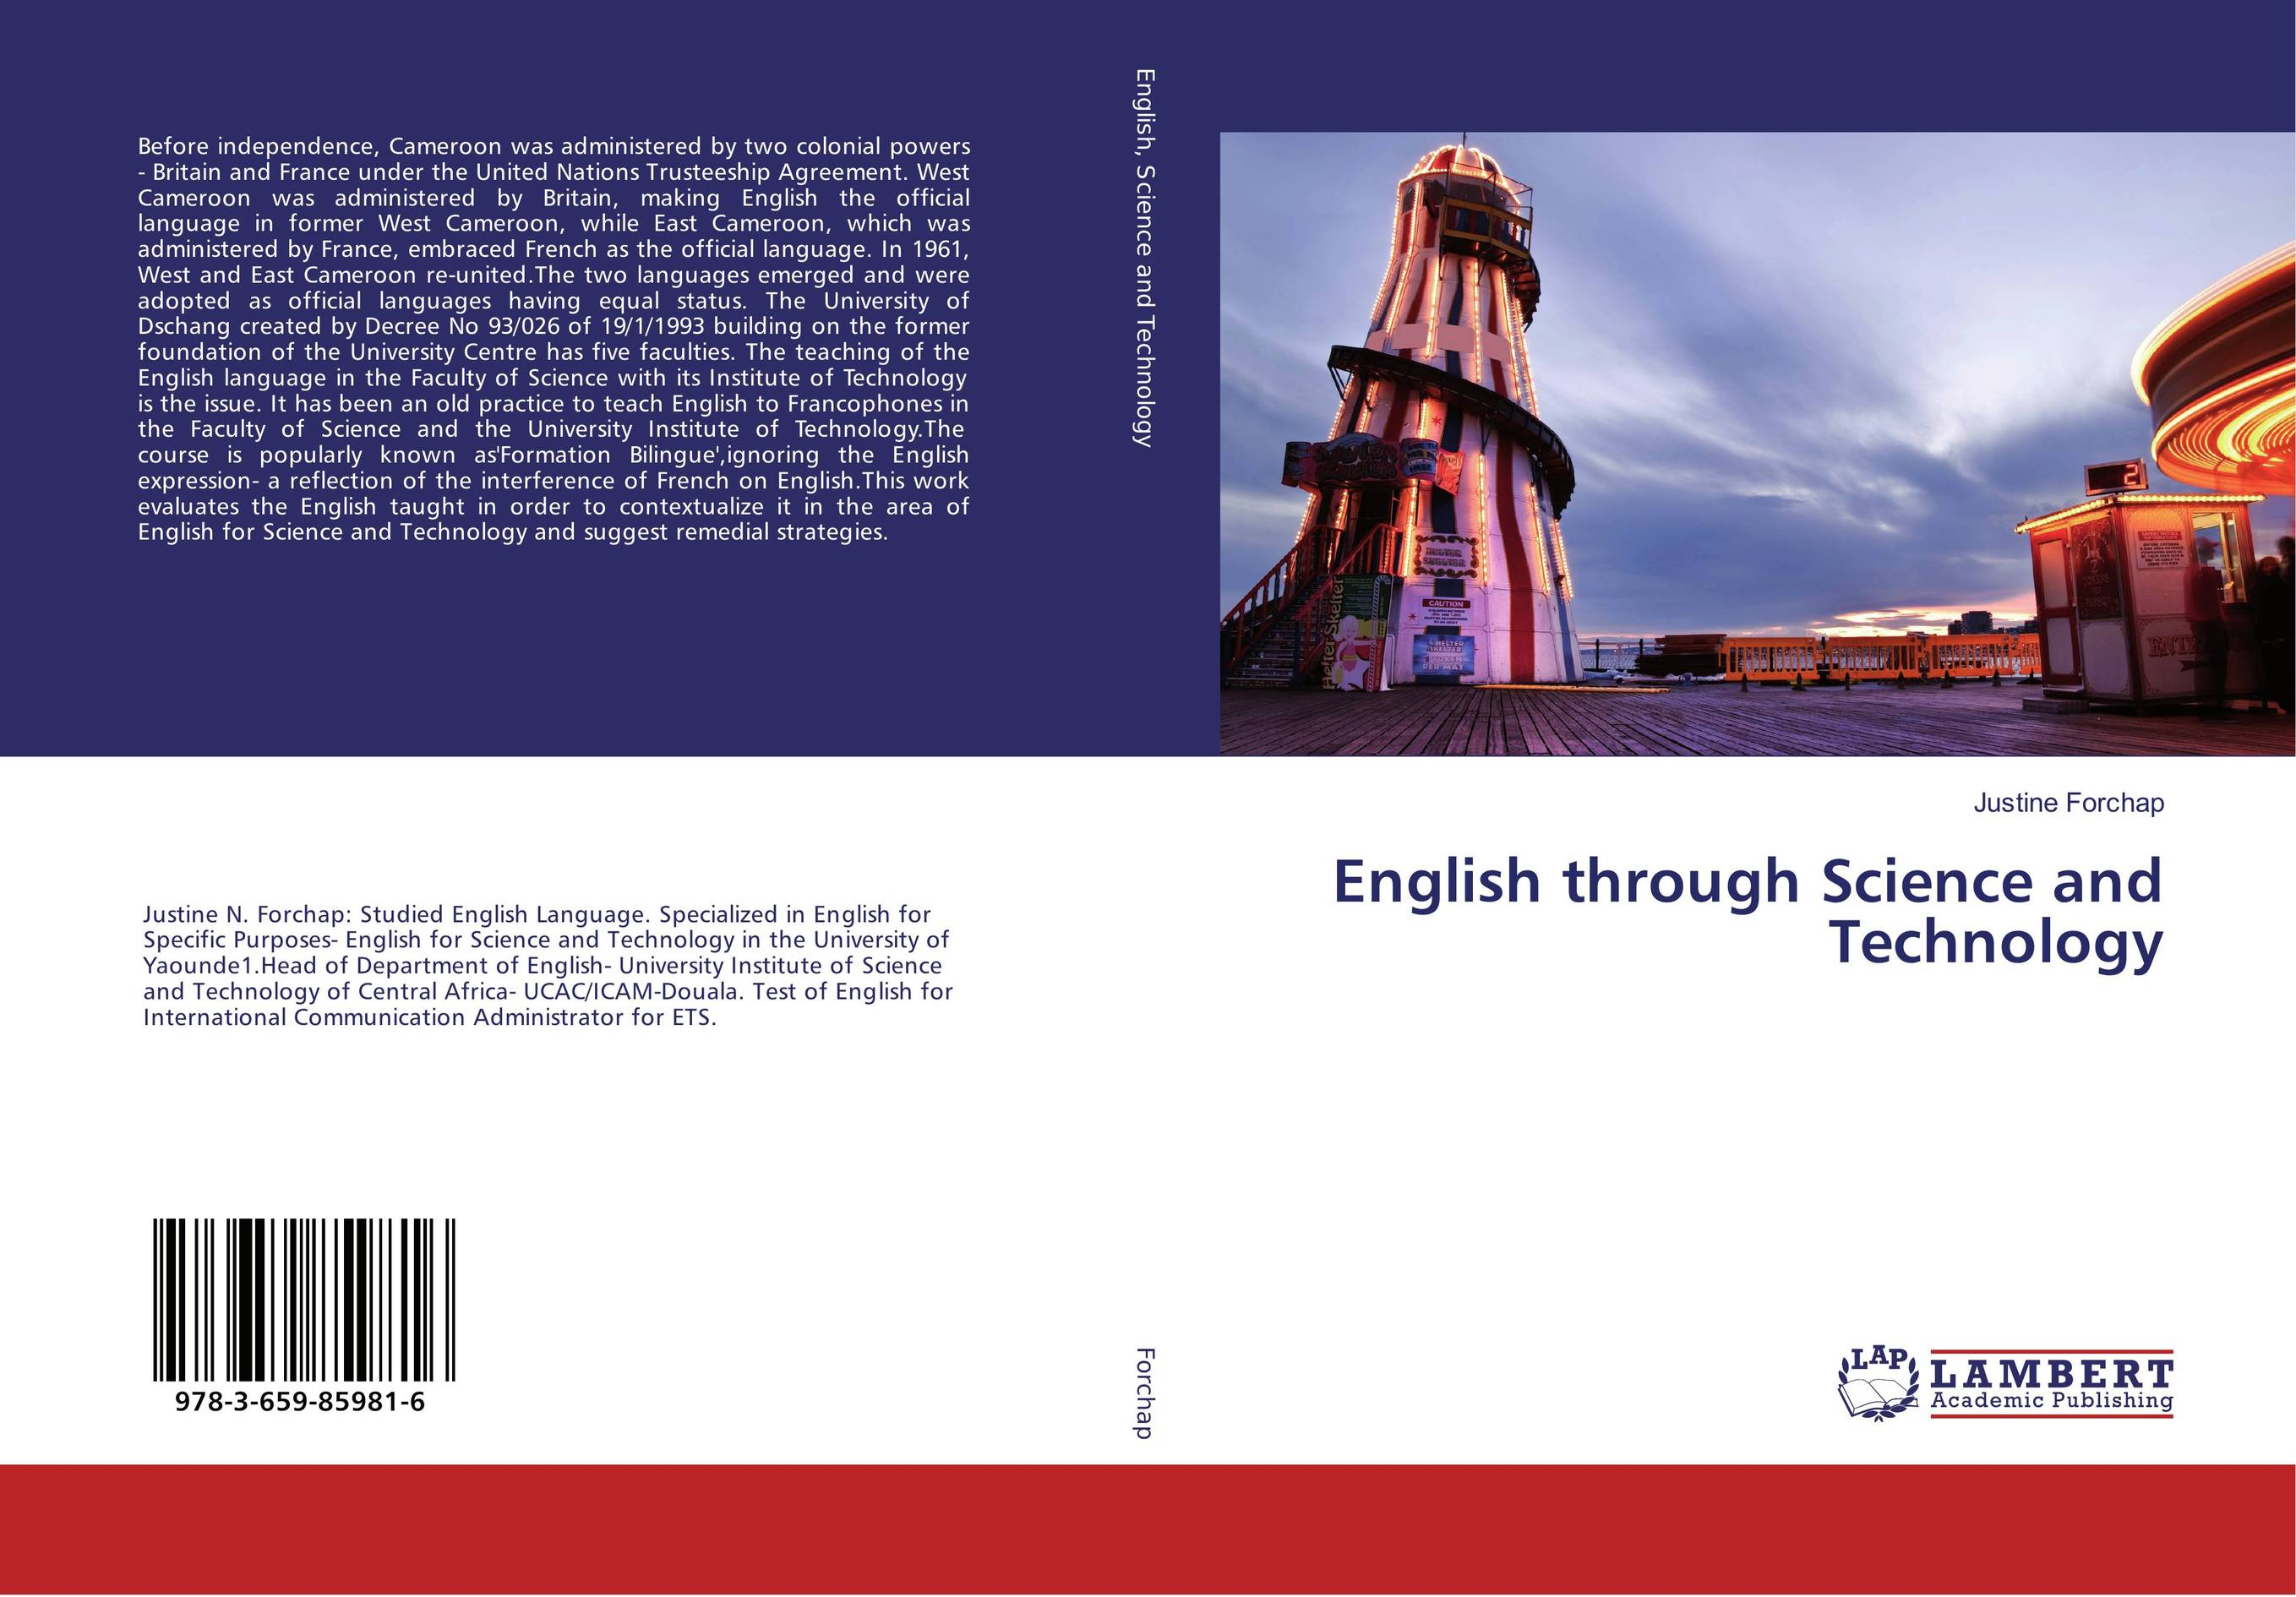 English through Science and Technology azamat abdoullaev science and technology in the 21st century future physics